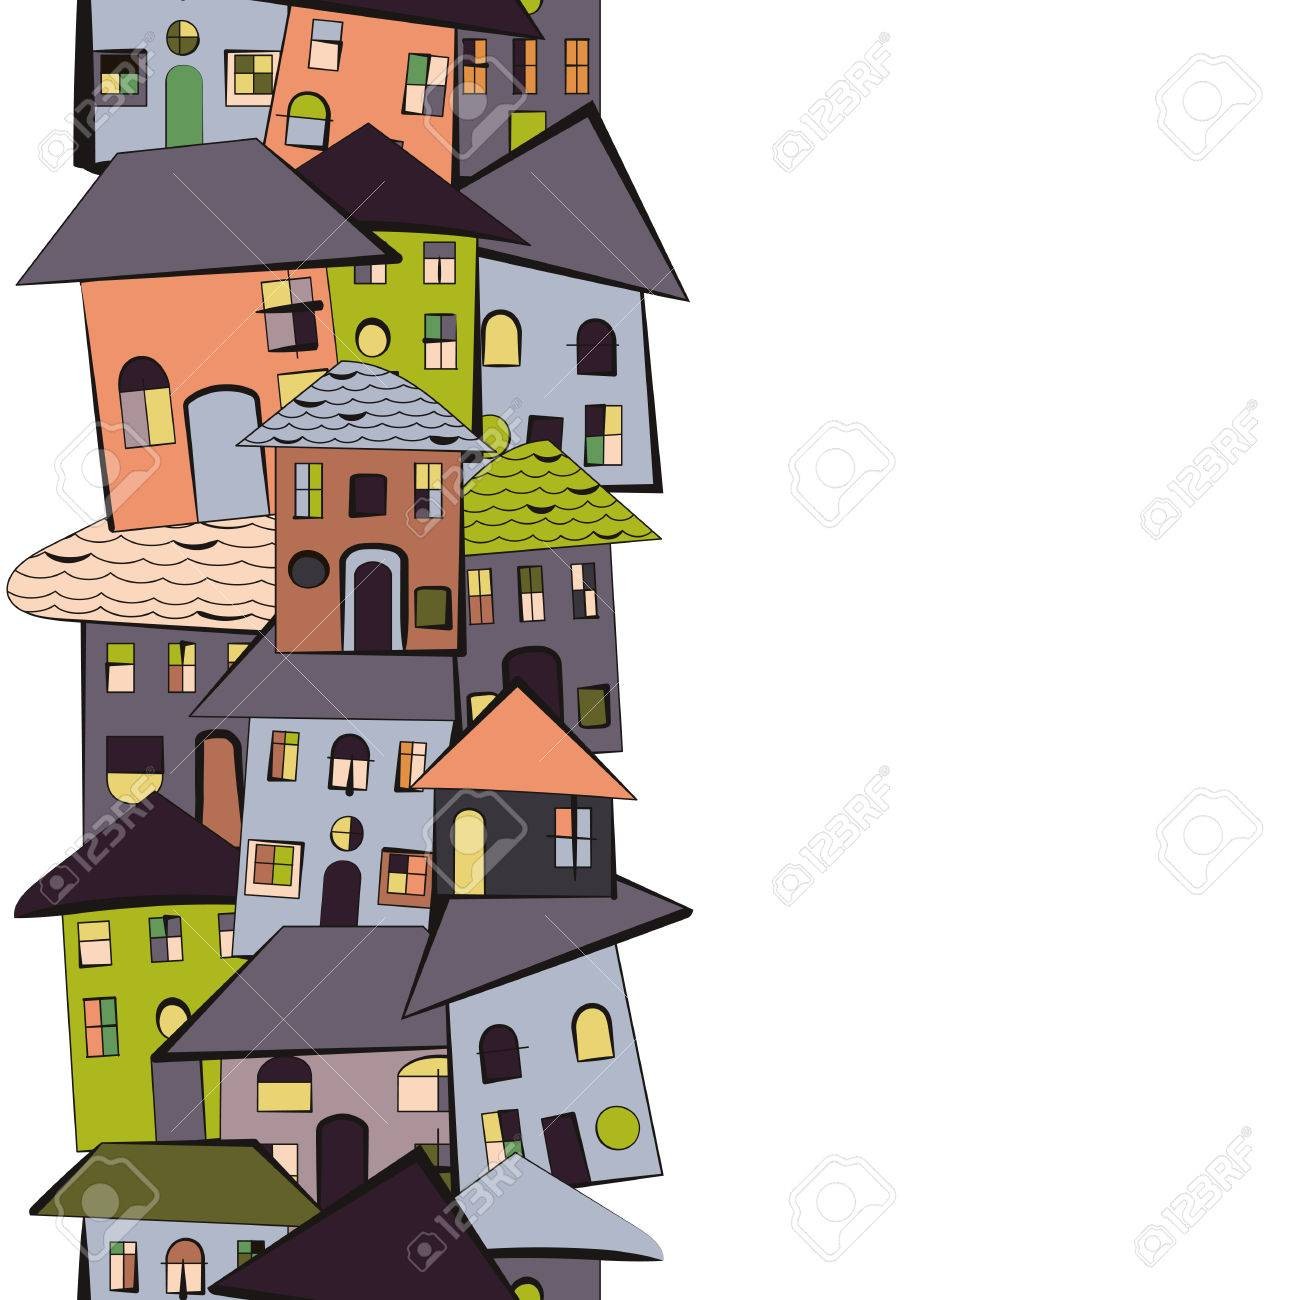 1300x1300 Primitive And Simple Naive Cartoon Houses With Roofs And Windows